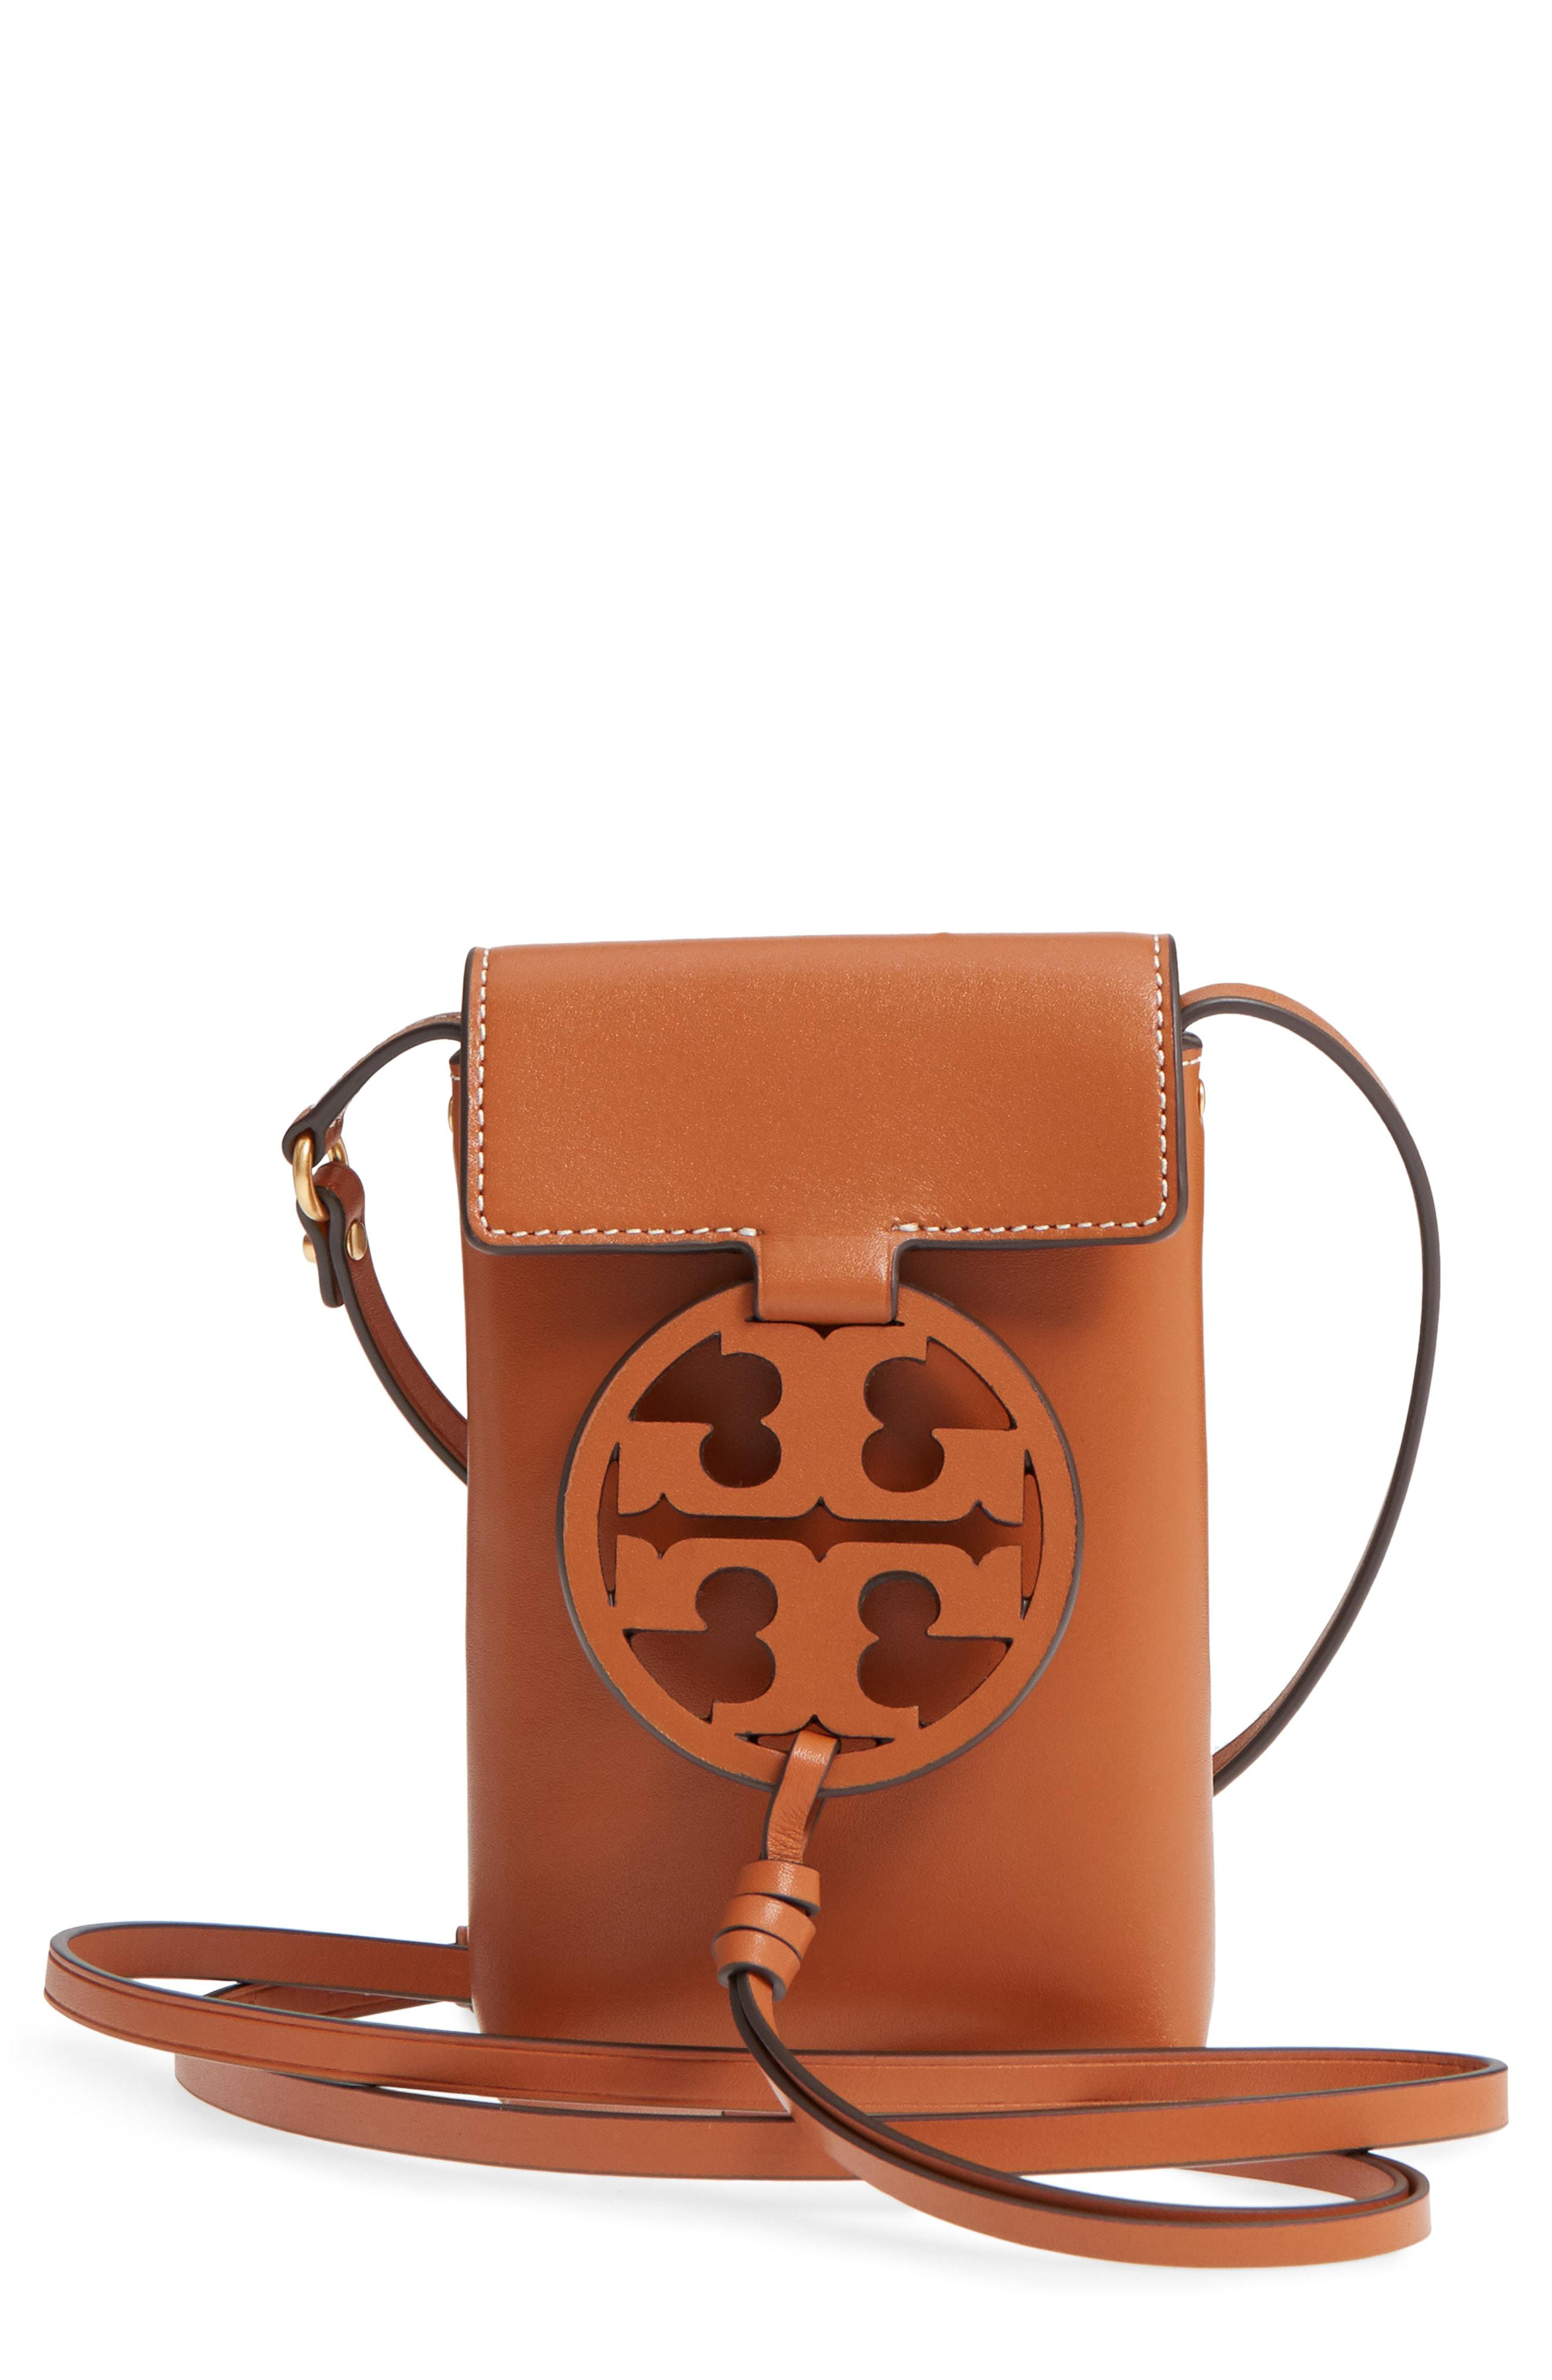 1bcc9e2ad4898c Lyst - Tory Burch Miller Leather Phone Crossbody Bag - in Blue